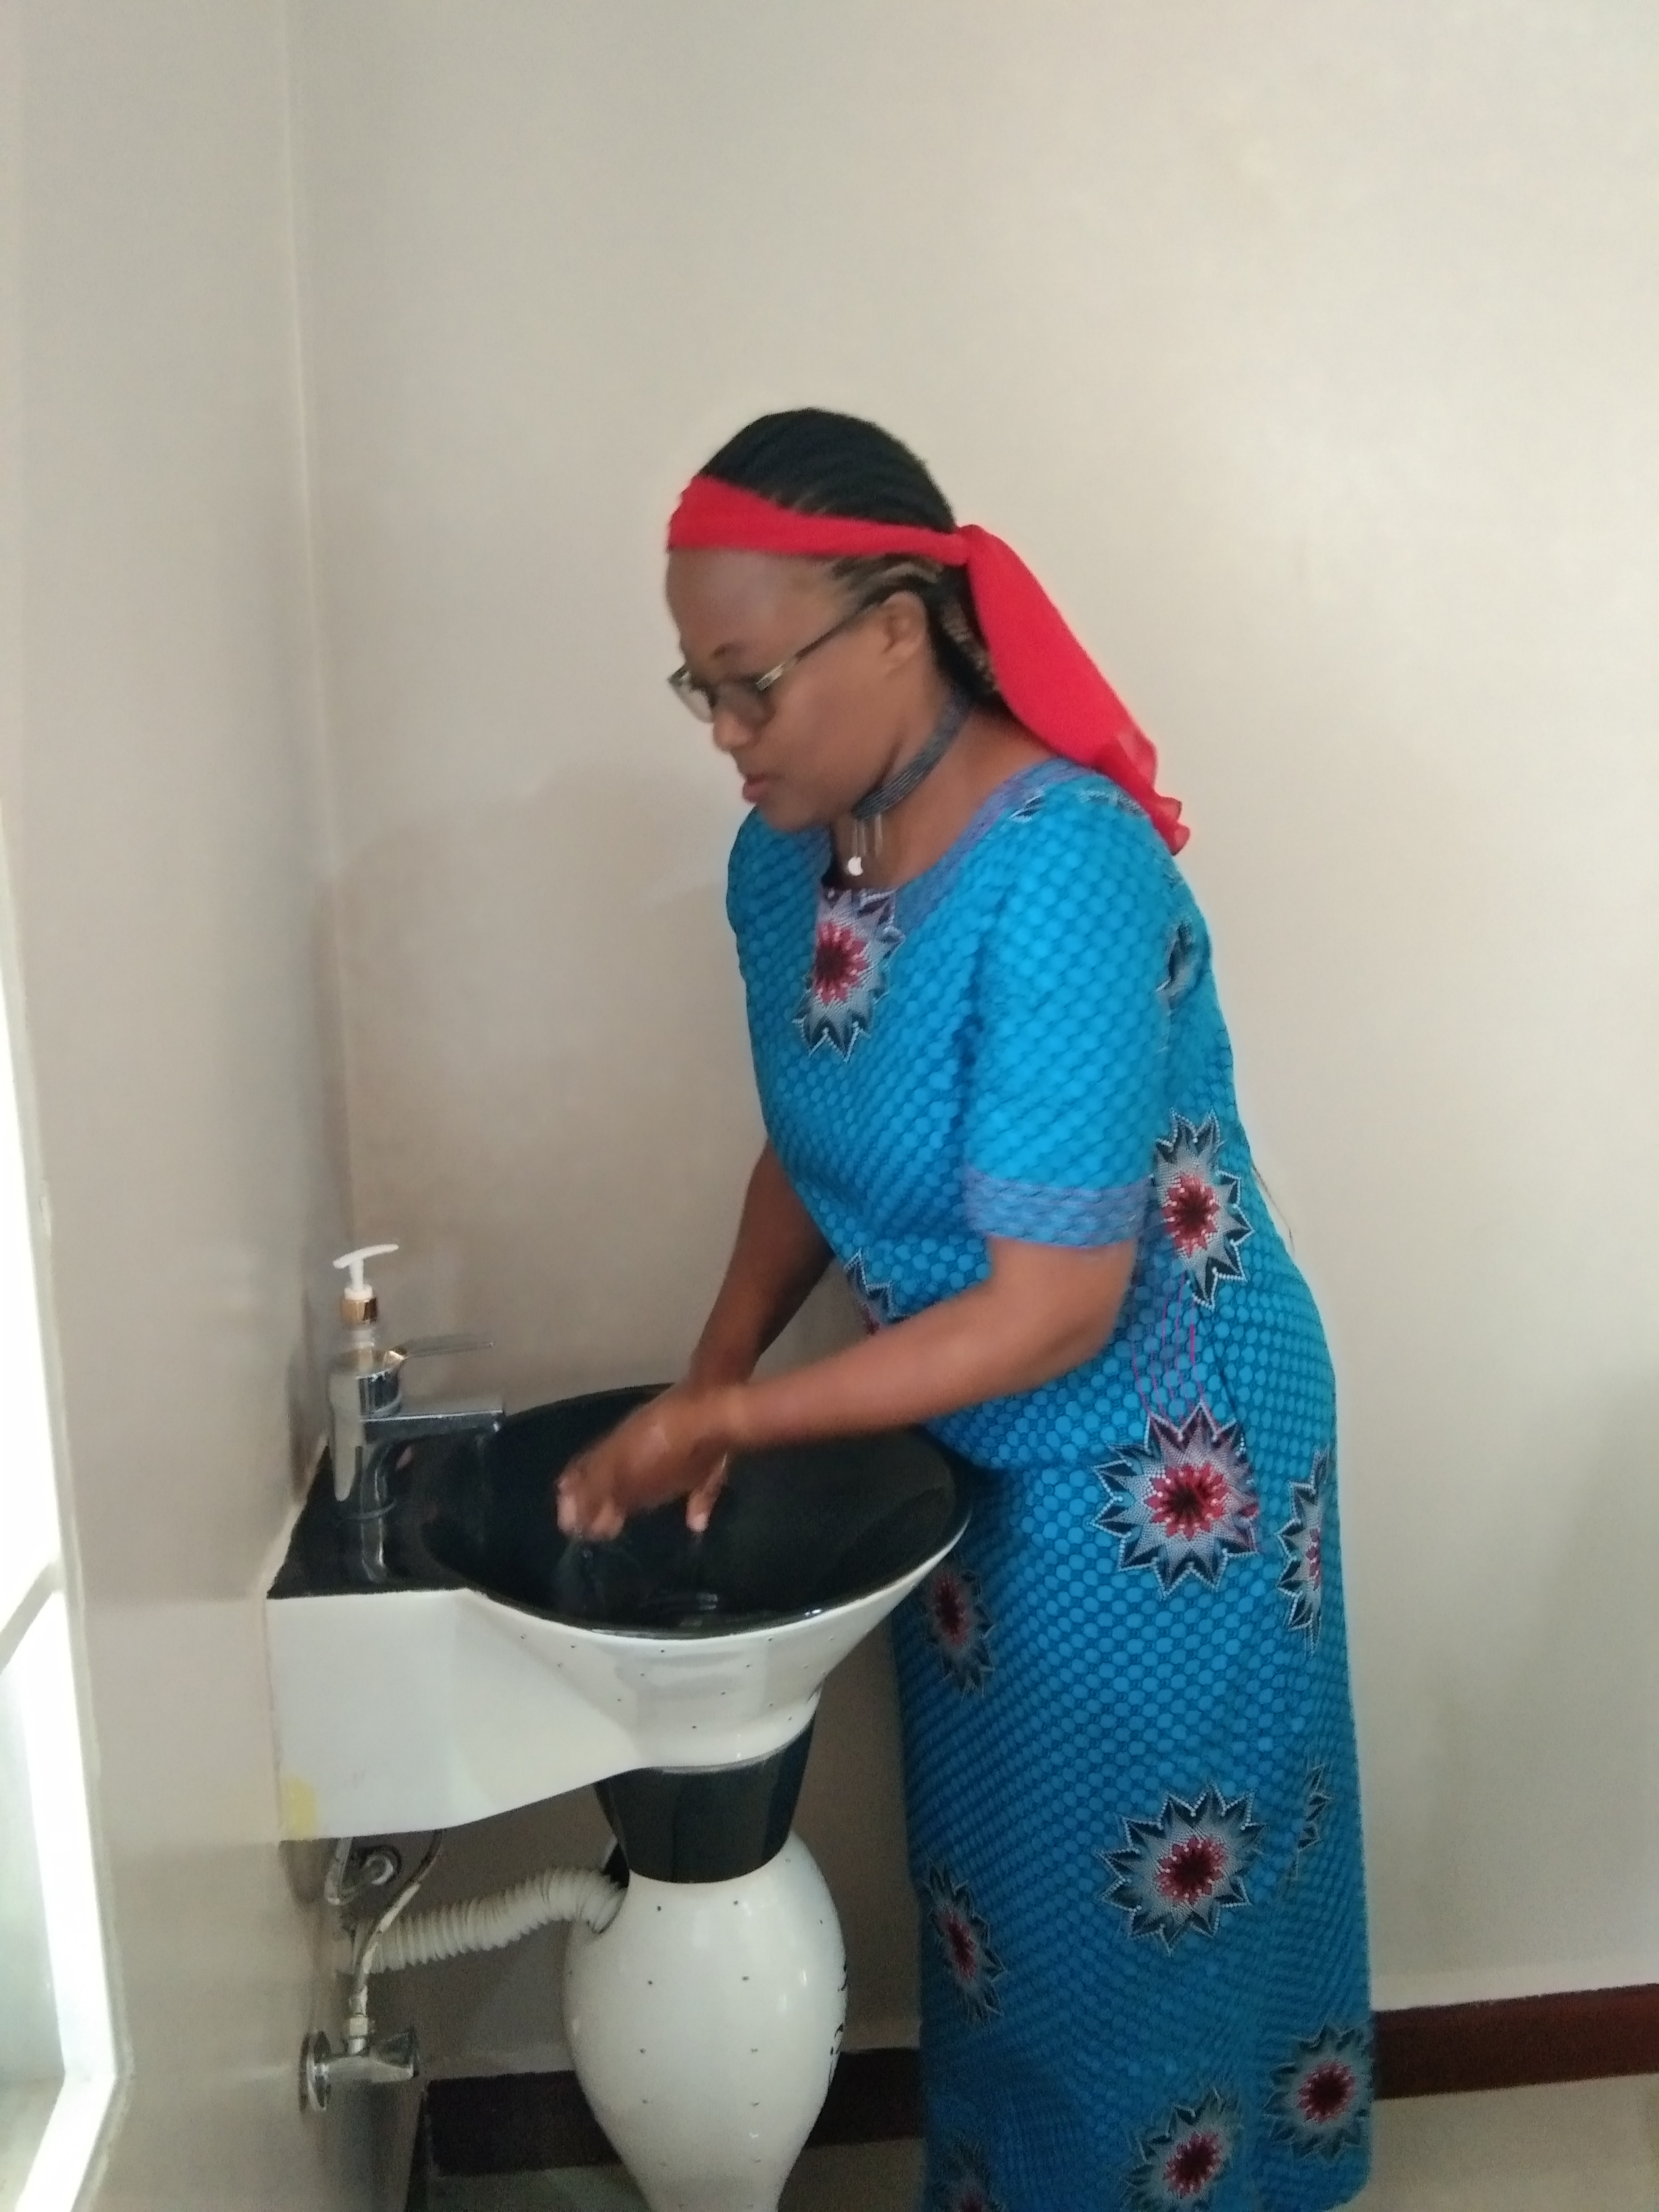 Proper hand washing with soap - training via video clips